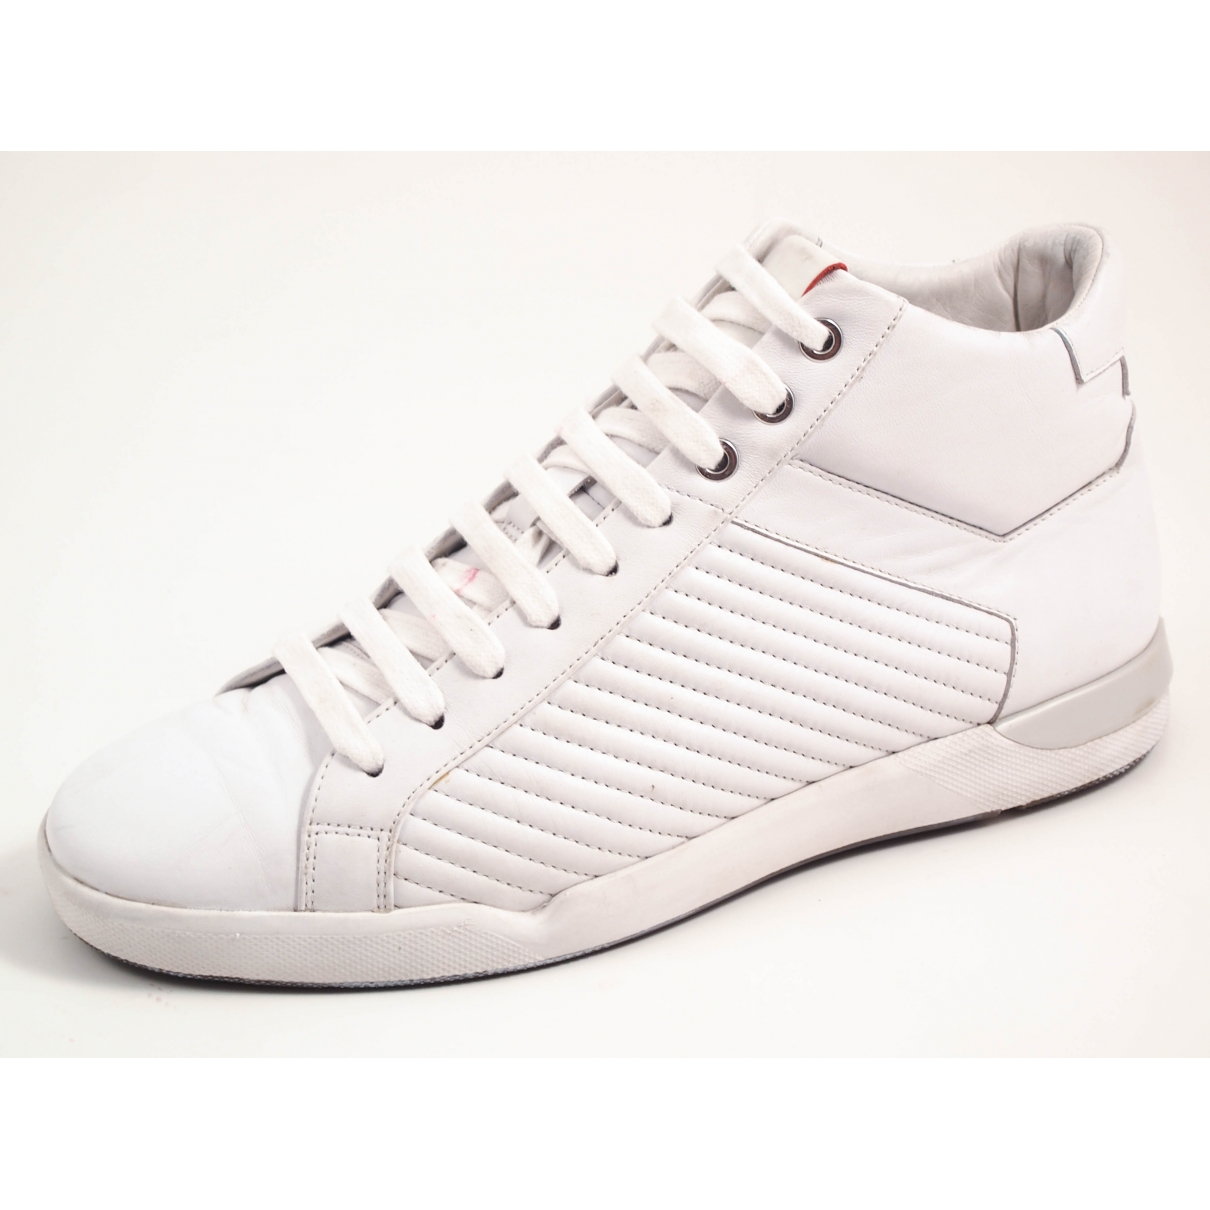 Hugo Boss \N White Leather Trainers for Men 40 EU